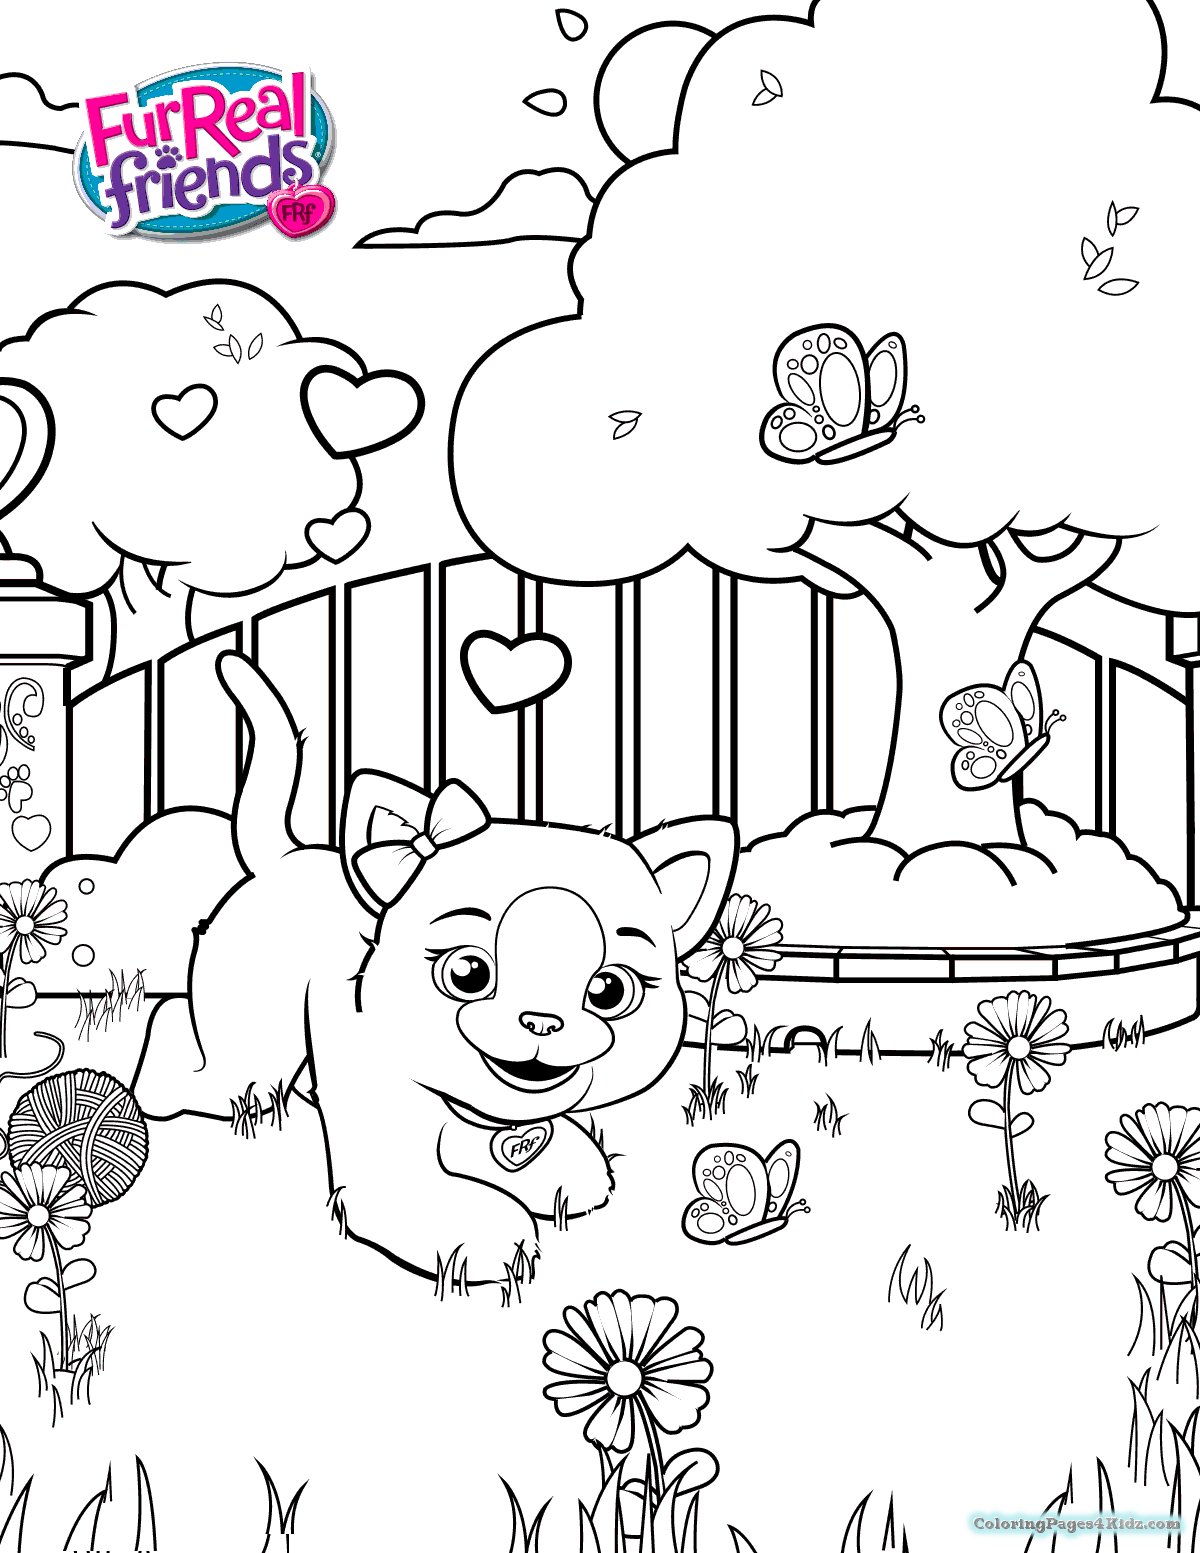 1200x1553 Furreal Friends Coloring Pages Pdf Coloring Pages For Kids